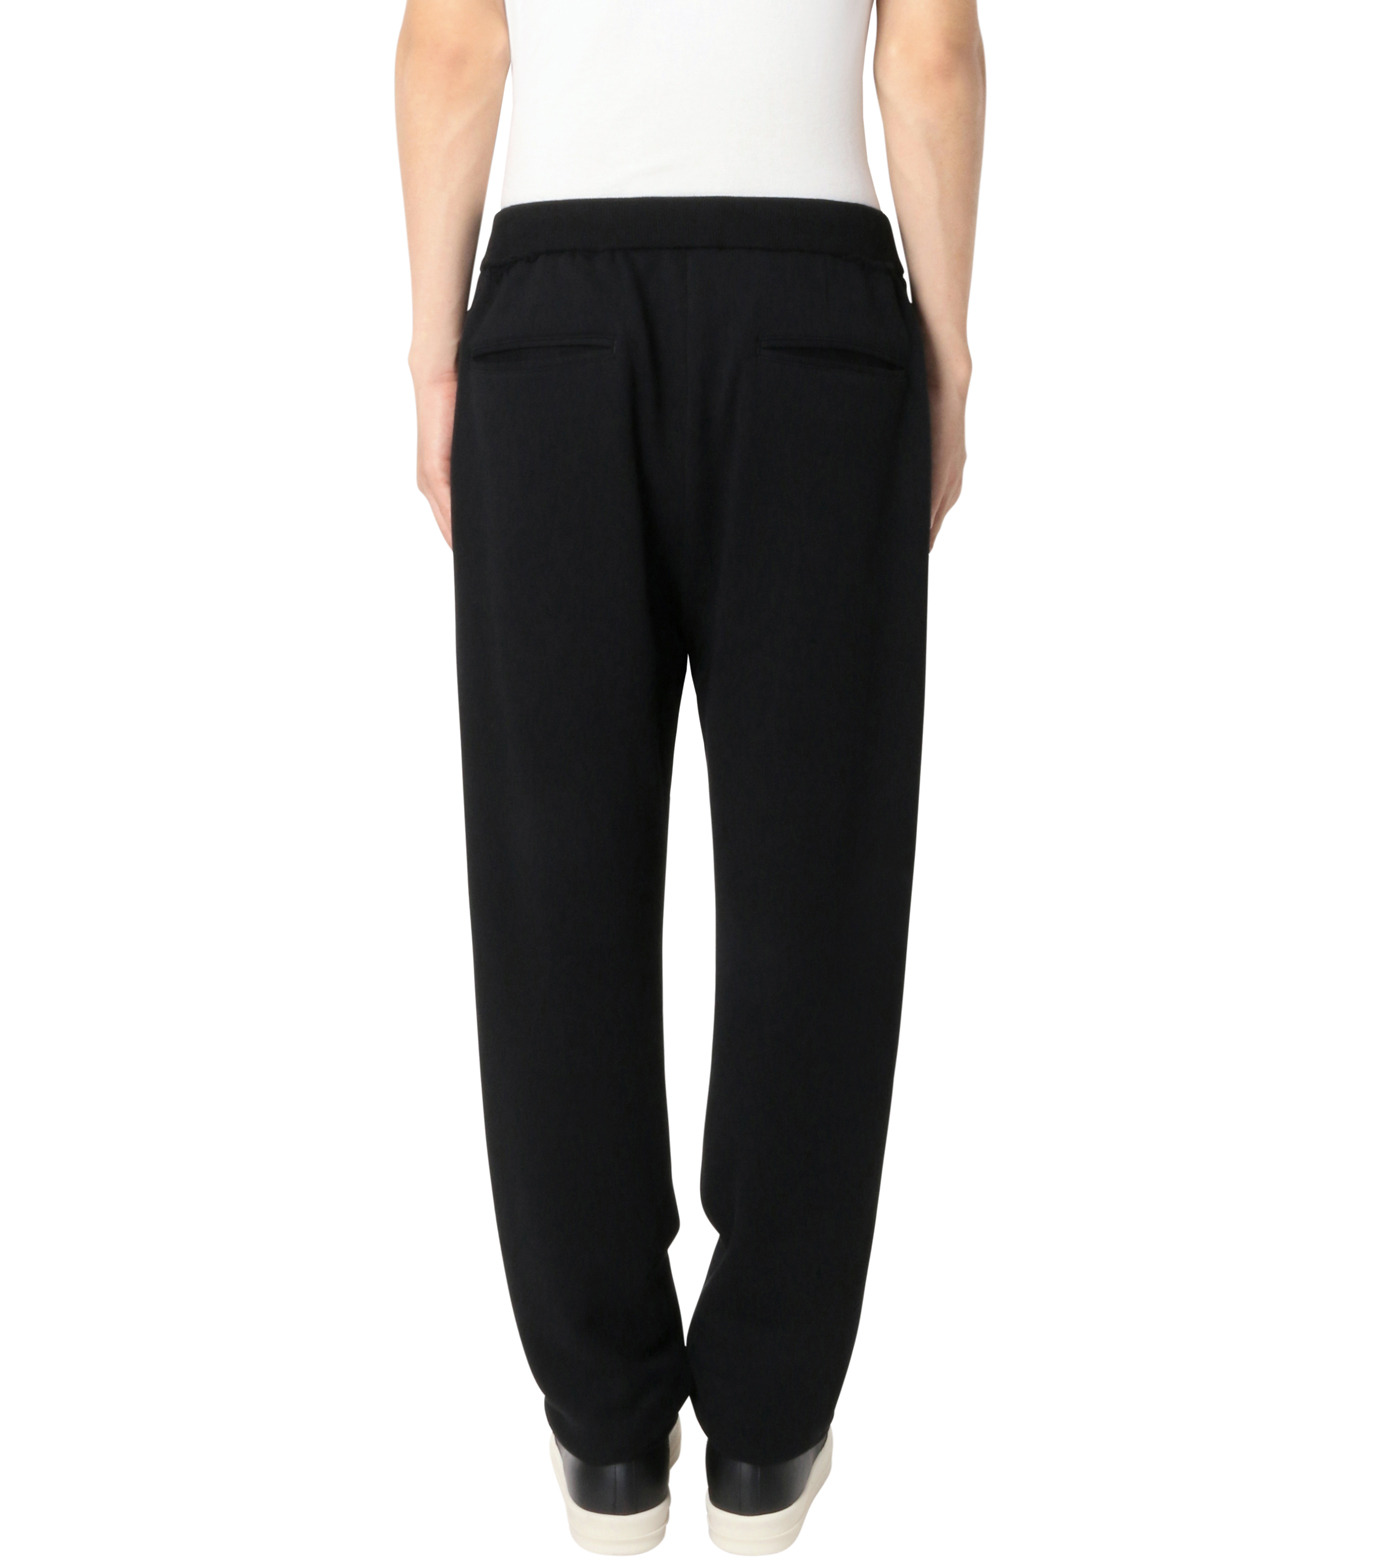 DRESSEDUNDRESSED(ドレスドアンドレスド)のDamaged Drawstring Trackpants-BLACK-DUW16352-13 拡大詳細画像2